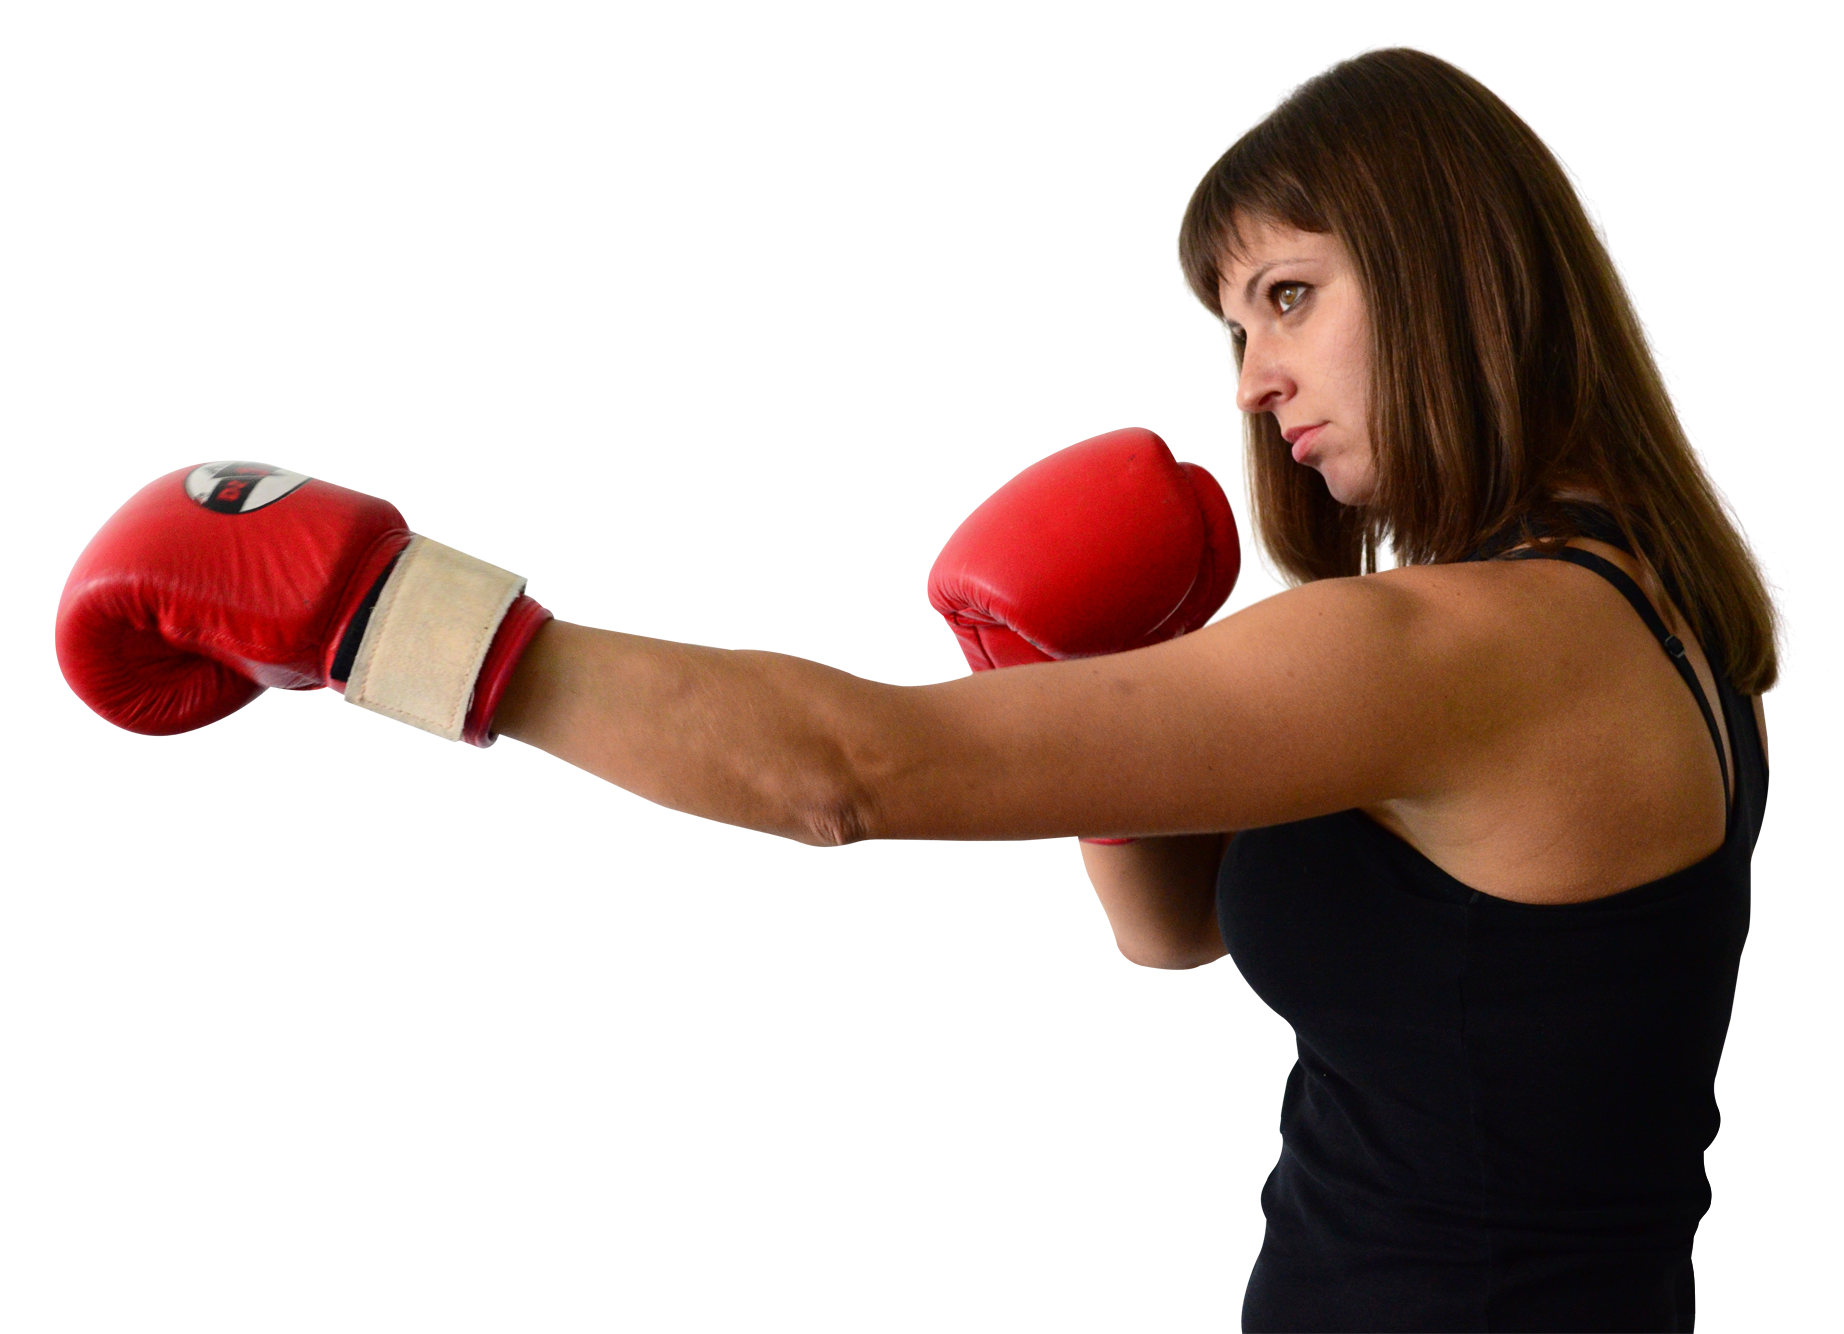 Boxer png transparent image. Fighting clipart woman boxing